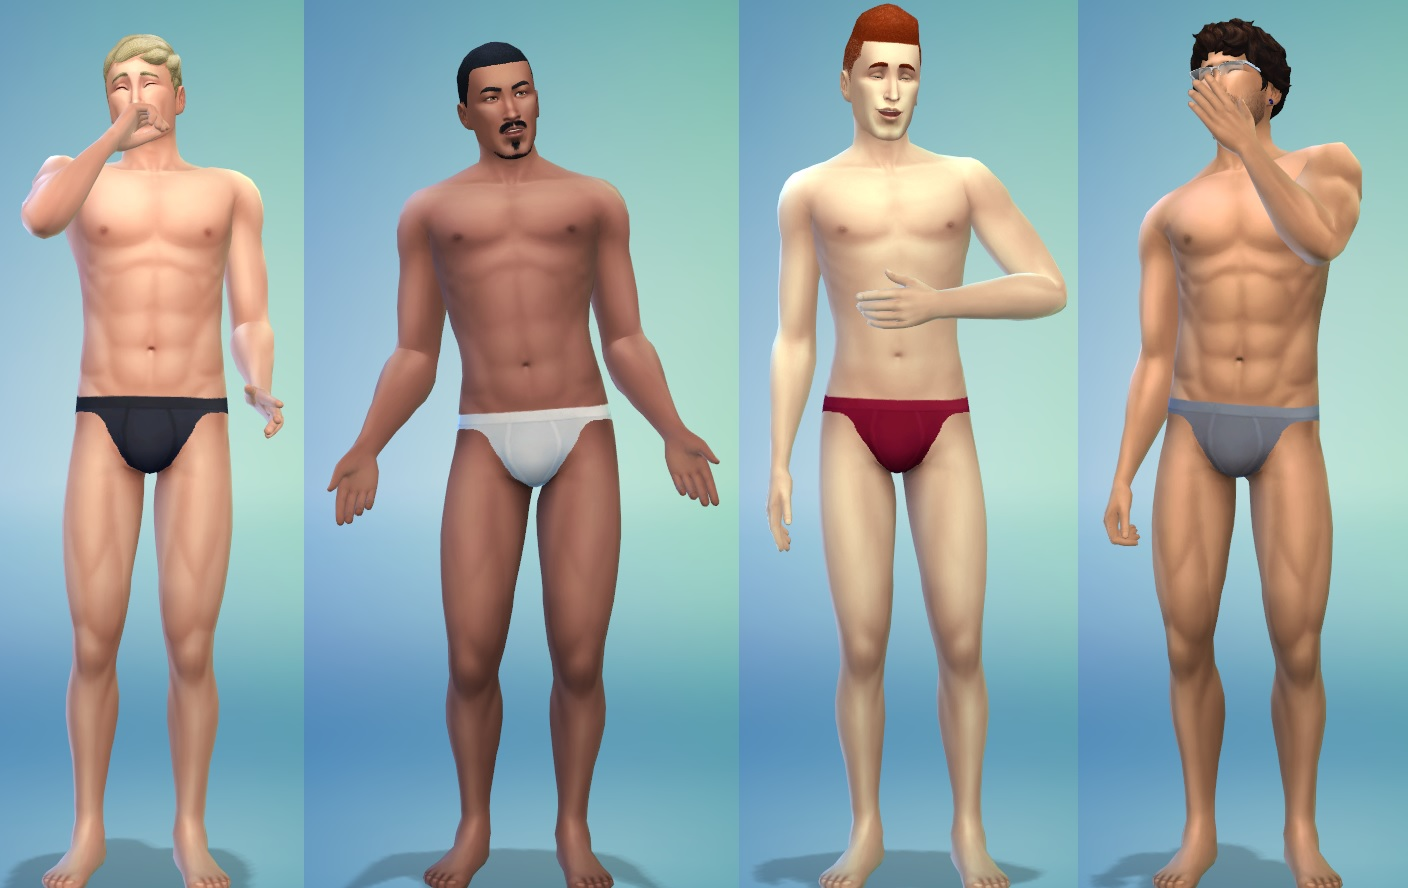 Large penis sims2 download nude images